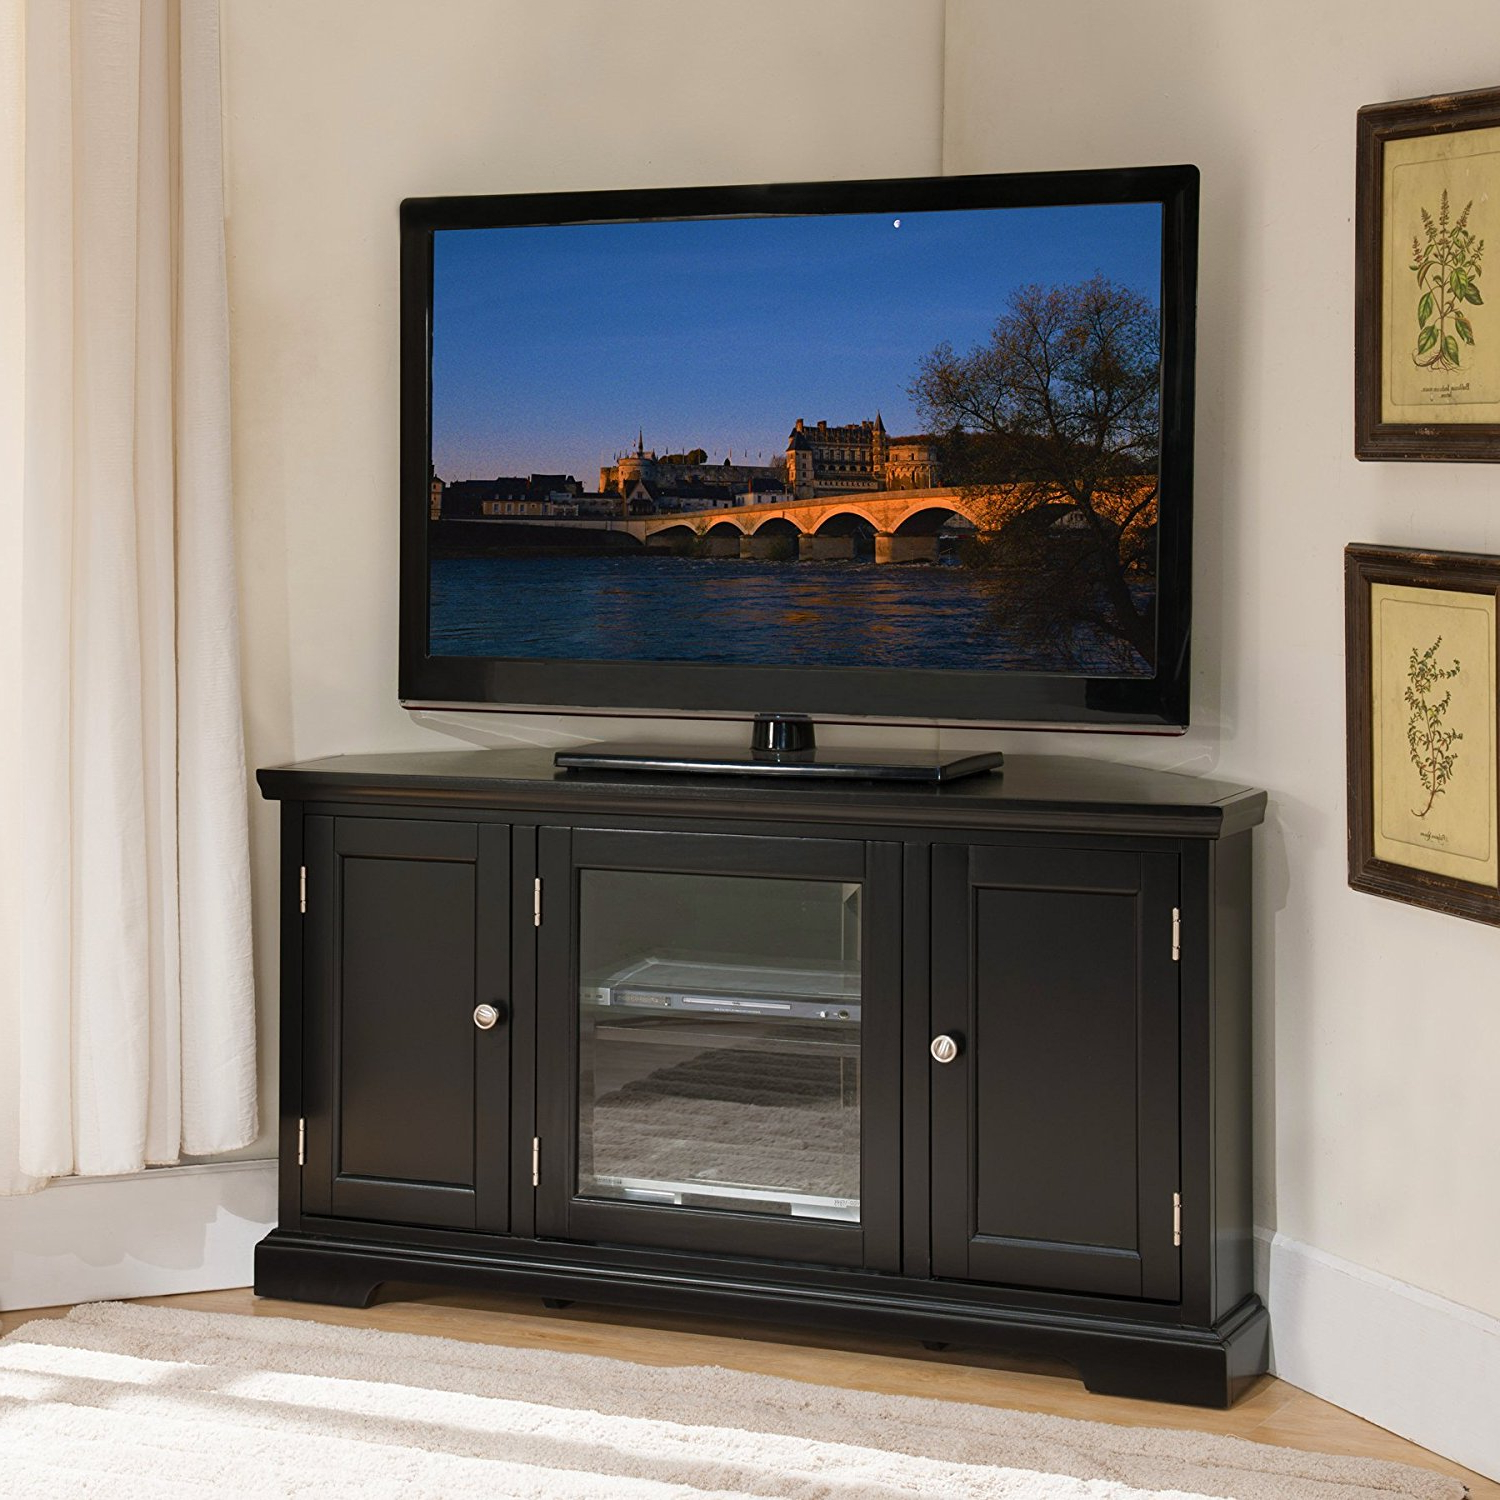 Trendy Edgeware Black Tv Stands Within Leick 46 Inch Hardwood Corner Tv Stand In Black Finish (View 4 of 10)